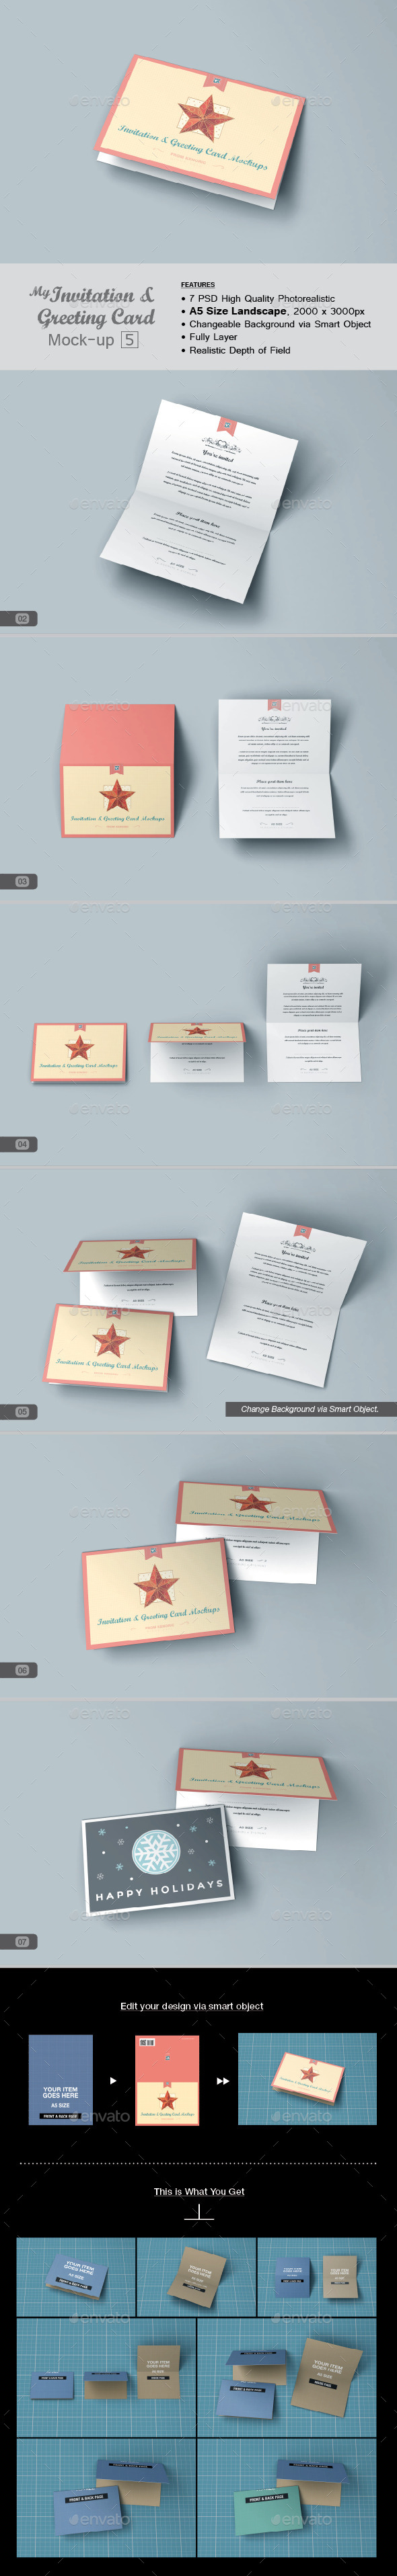 GraphicRiver myGreeting Card Mock-up v5 11558307